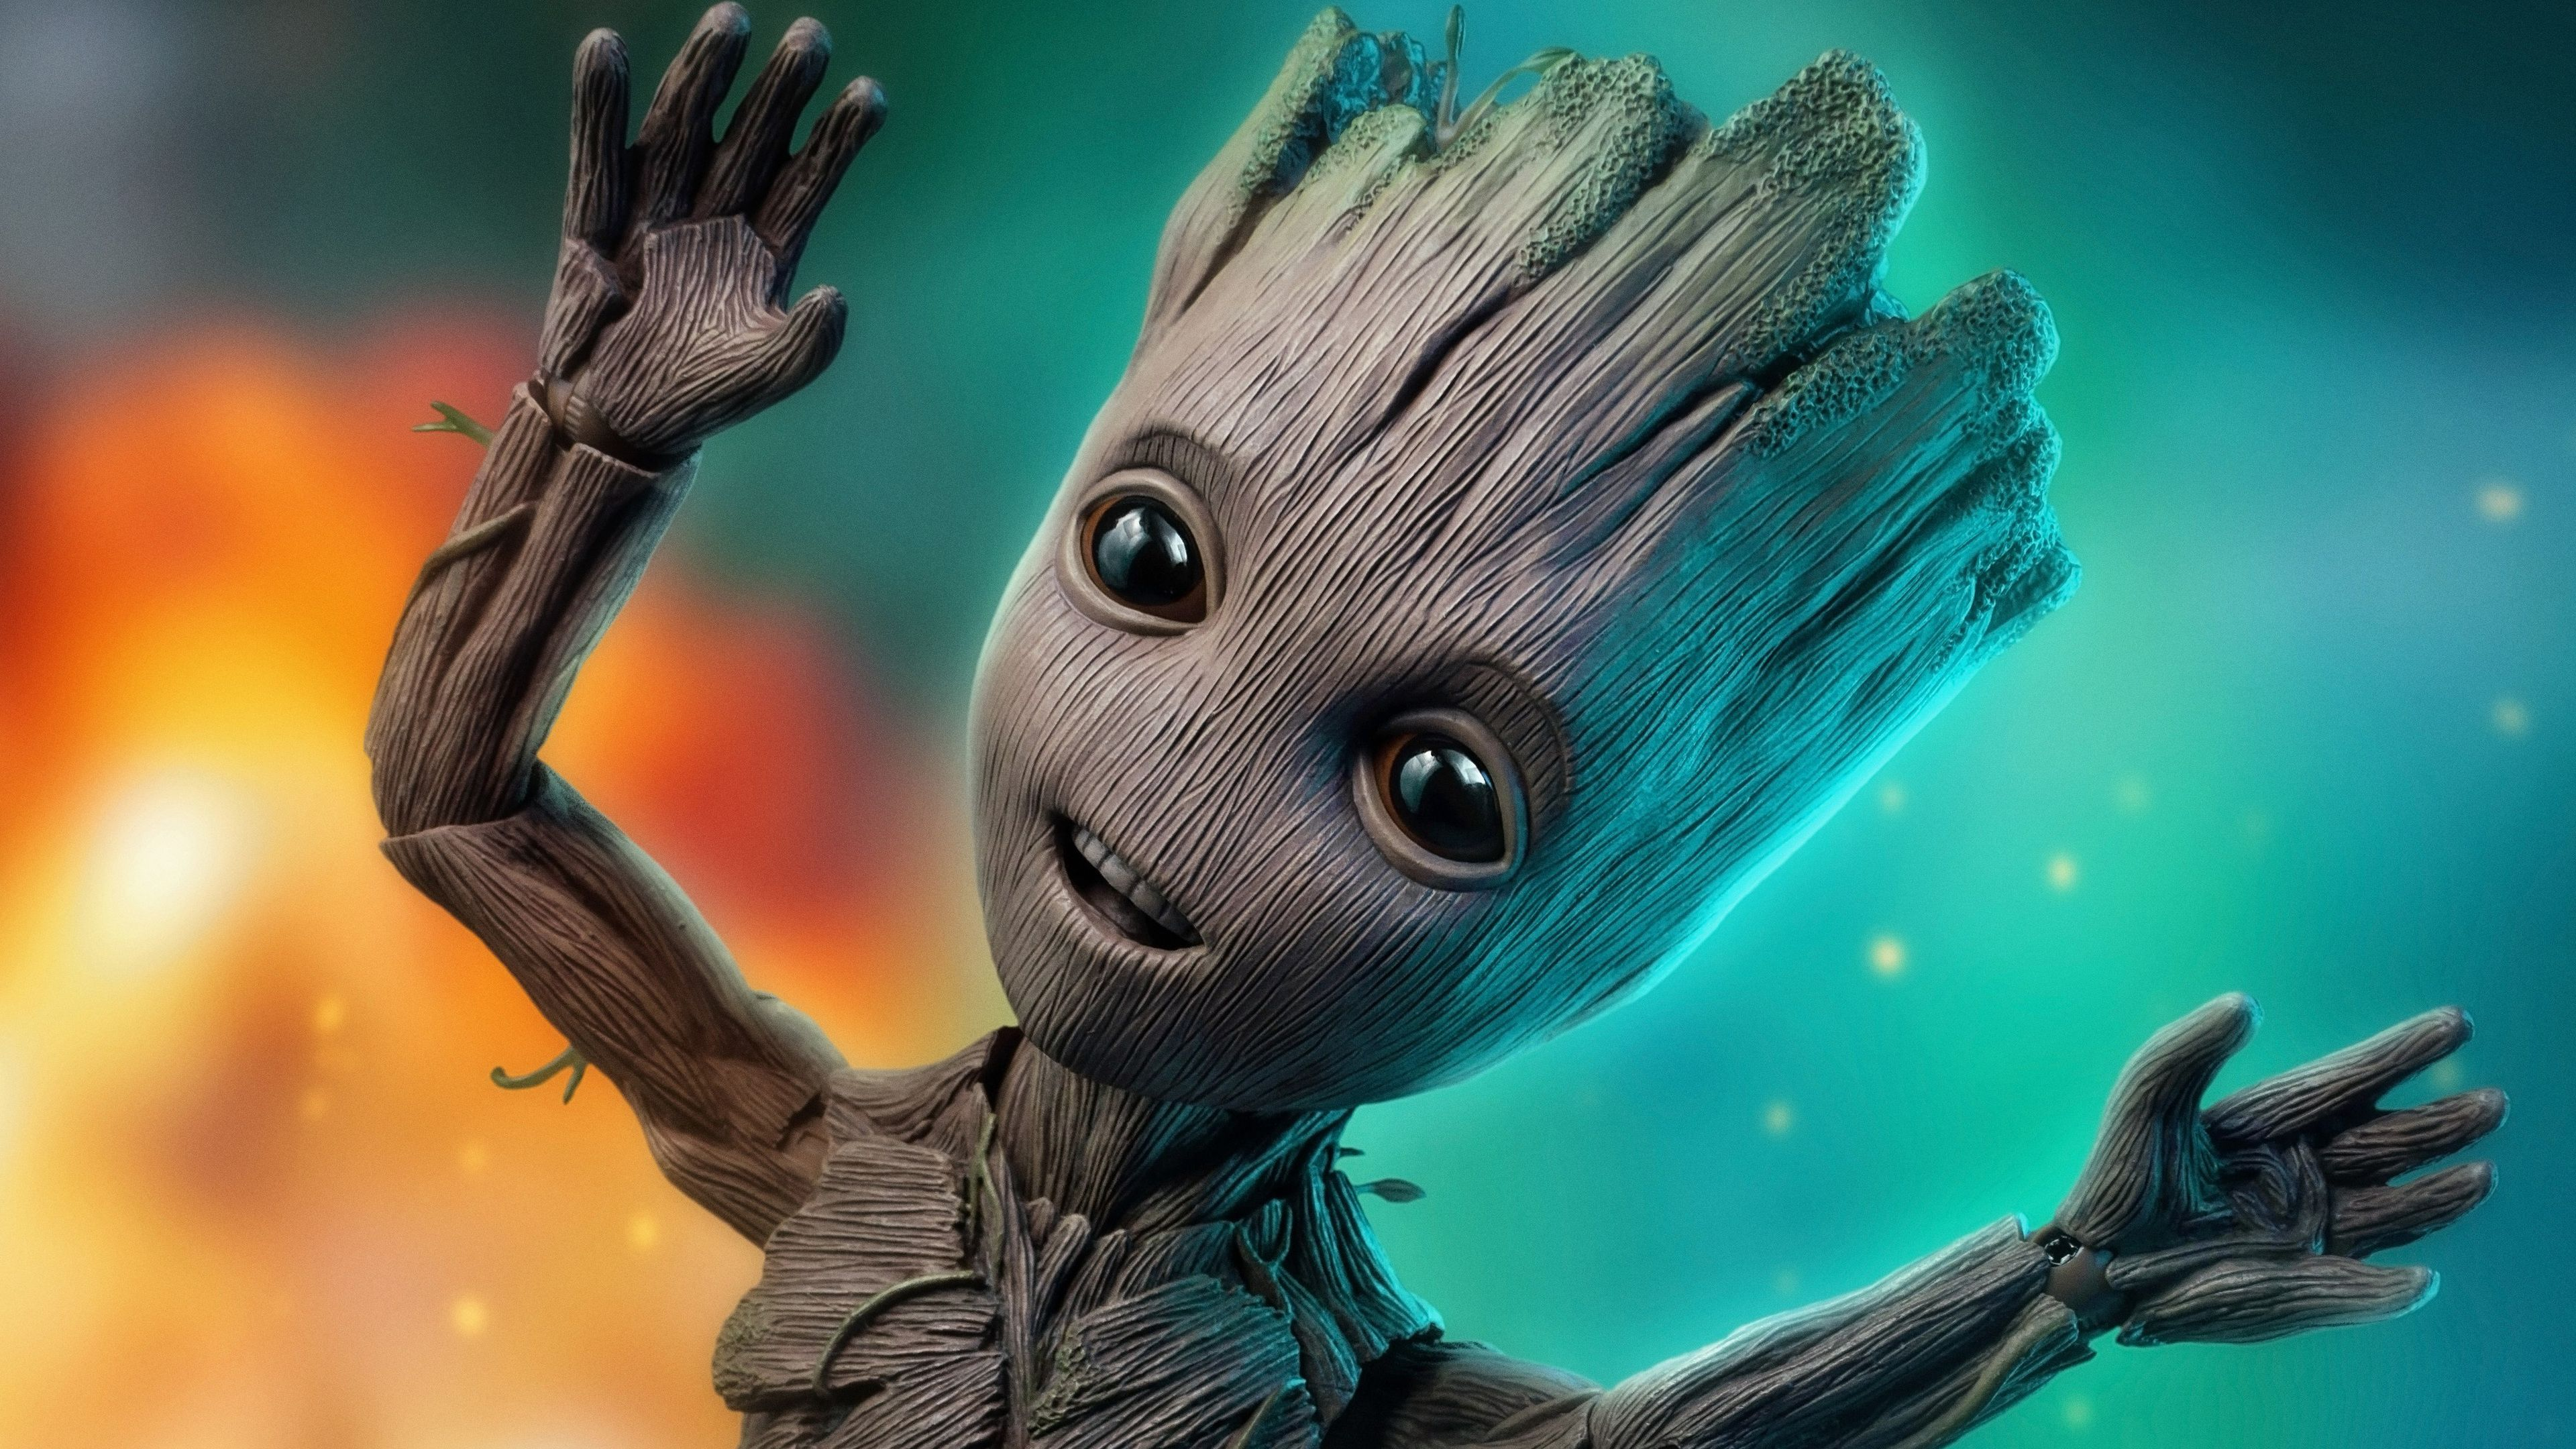 Baby Groot 4k 2018 Superheroes Wallpapers Hd Wallpapers Baby Groot